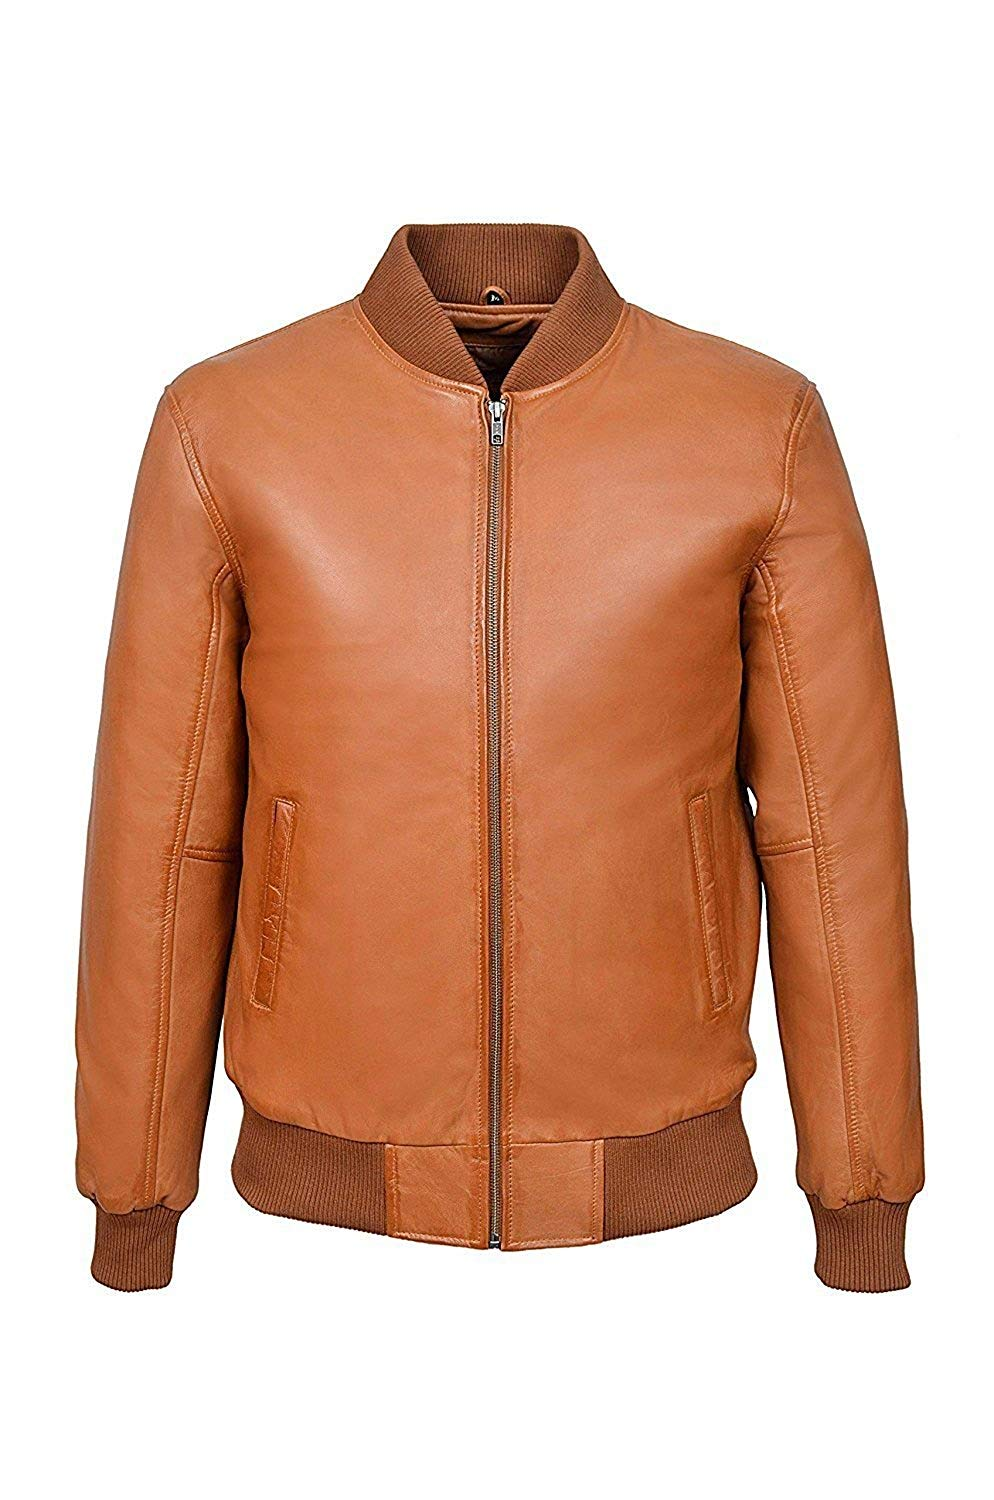 Leather Jacket Men 70's Classic Bomber Plain Biker Style Italian Fitted Brown Napa Waxed